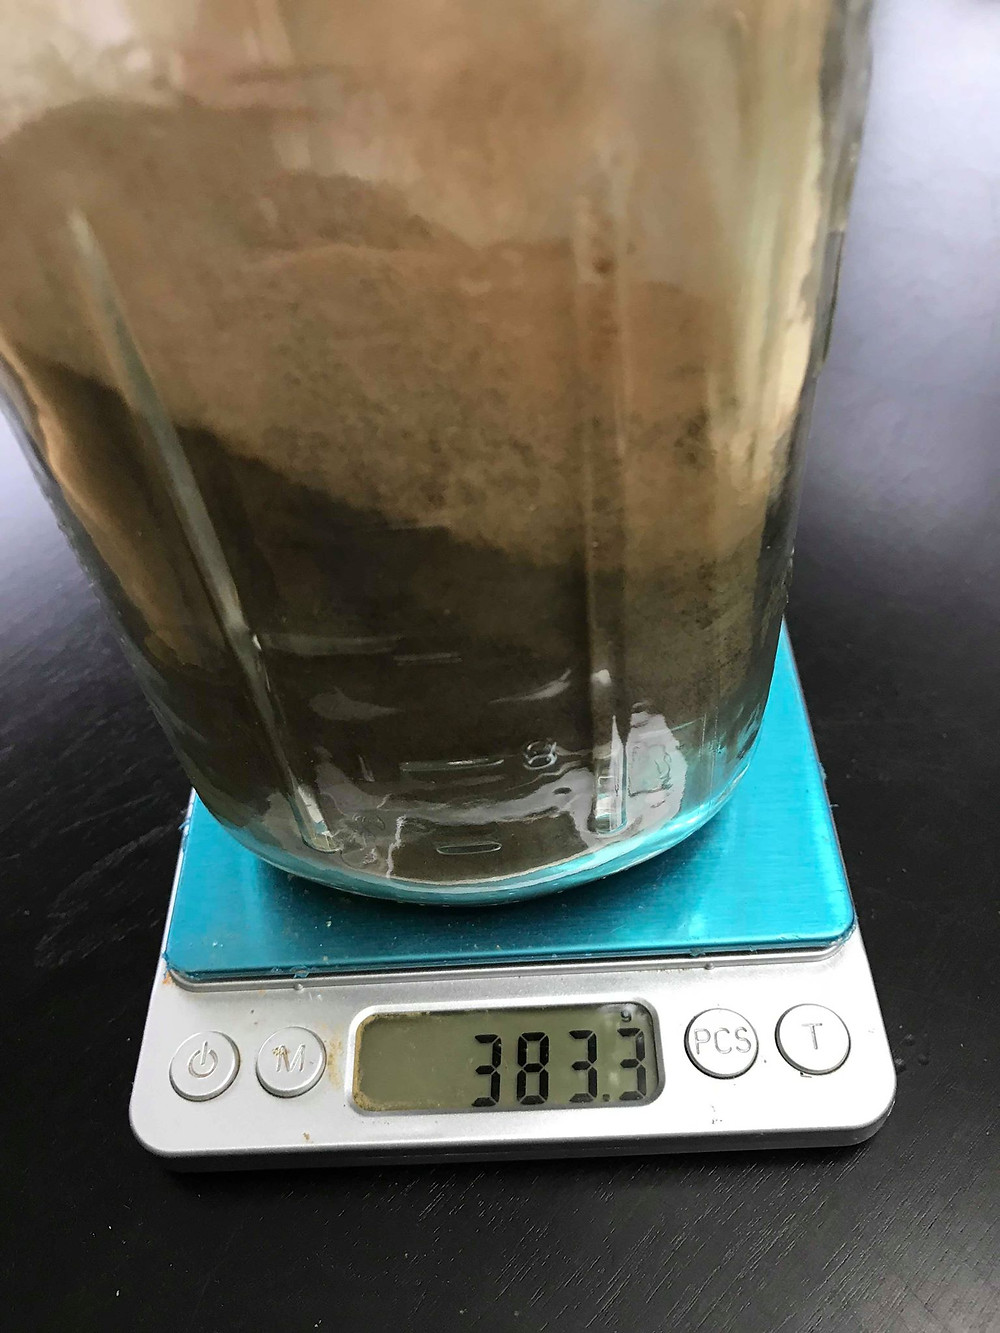 Grind the extract into powder, and your project is complete.